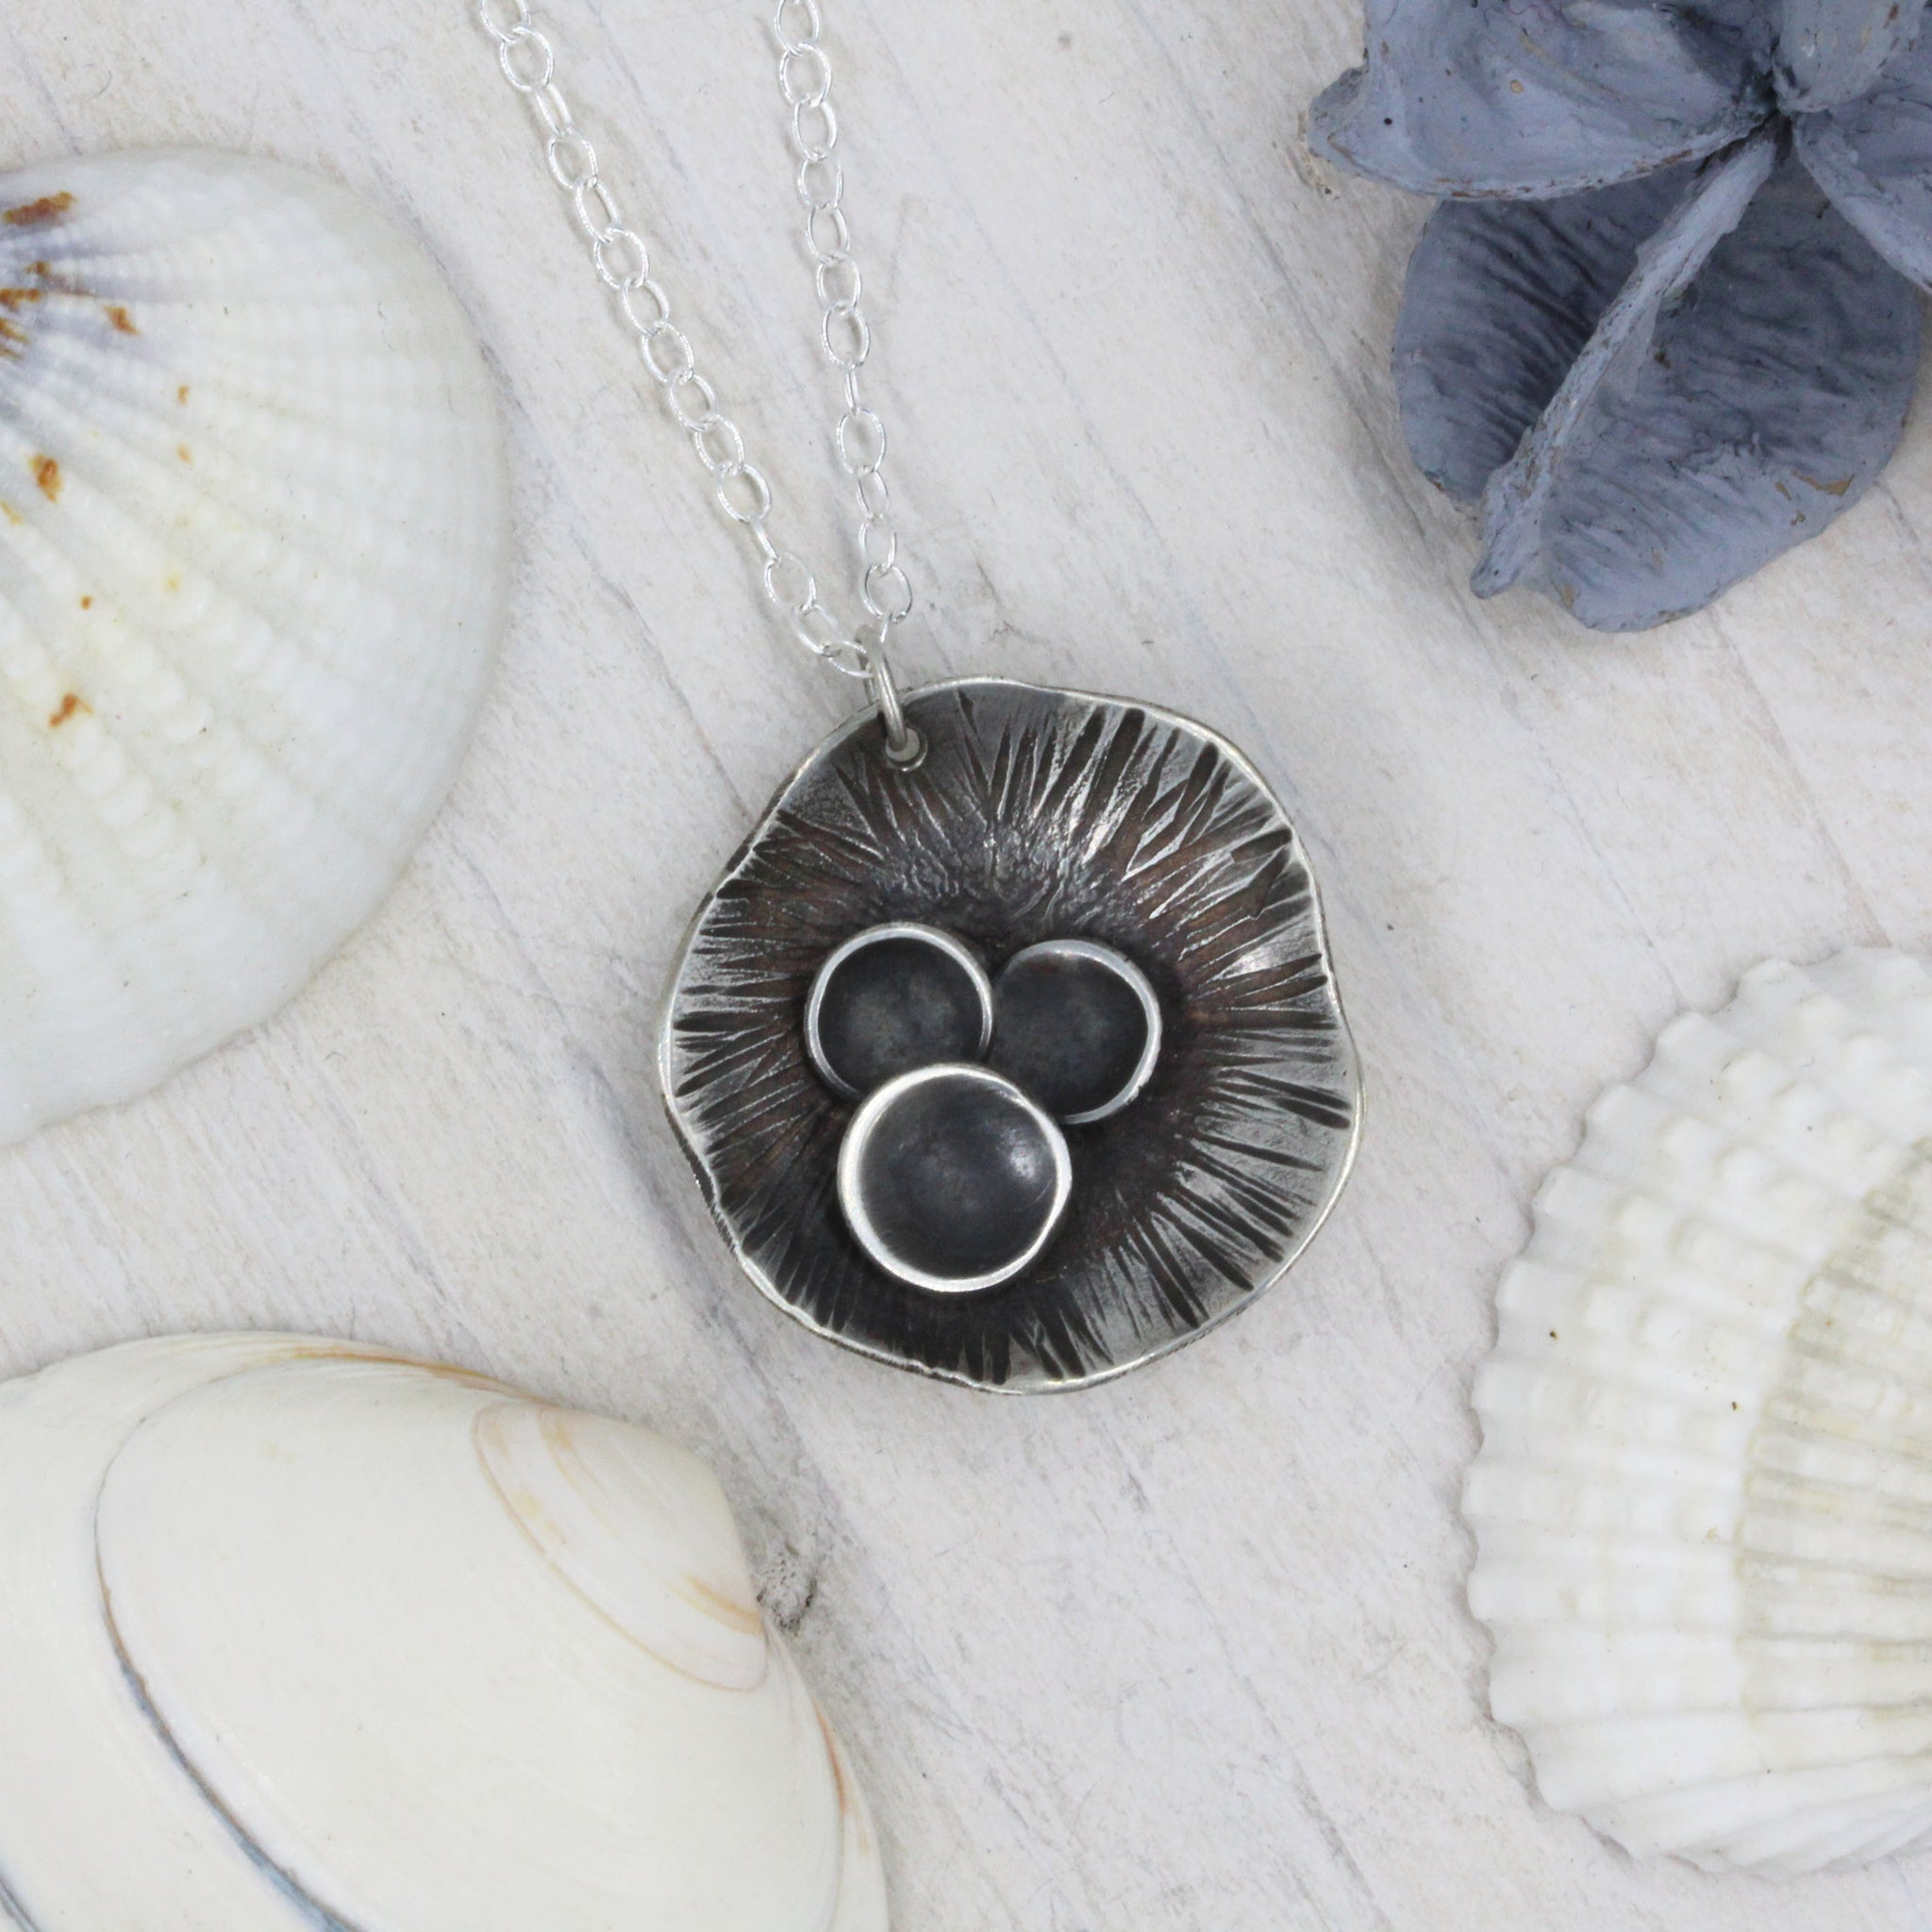 Rock pool inspired pendant, handcrafted in sterling silver by Gemma Tremayne Jewellery